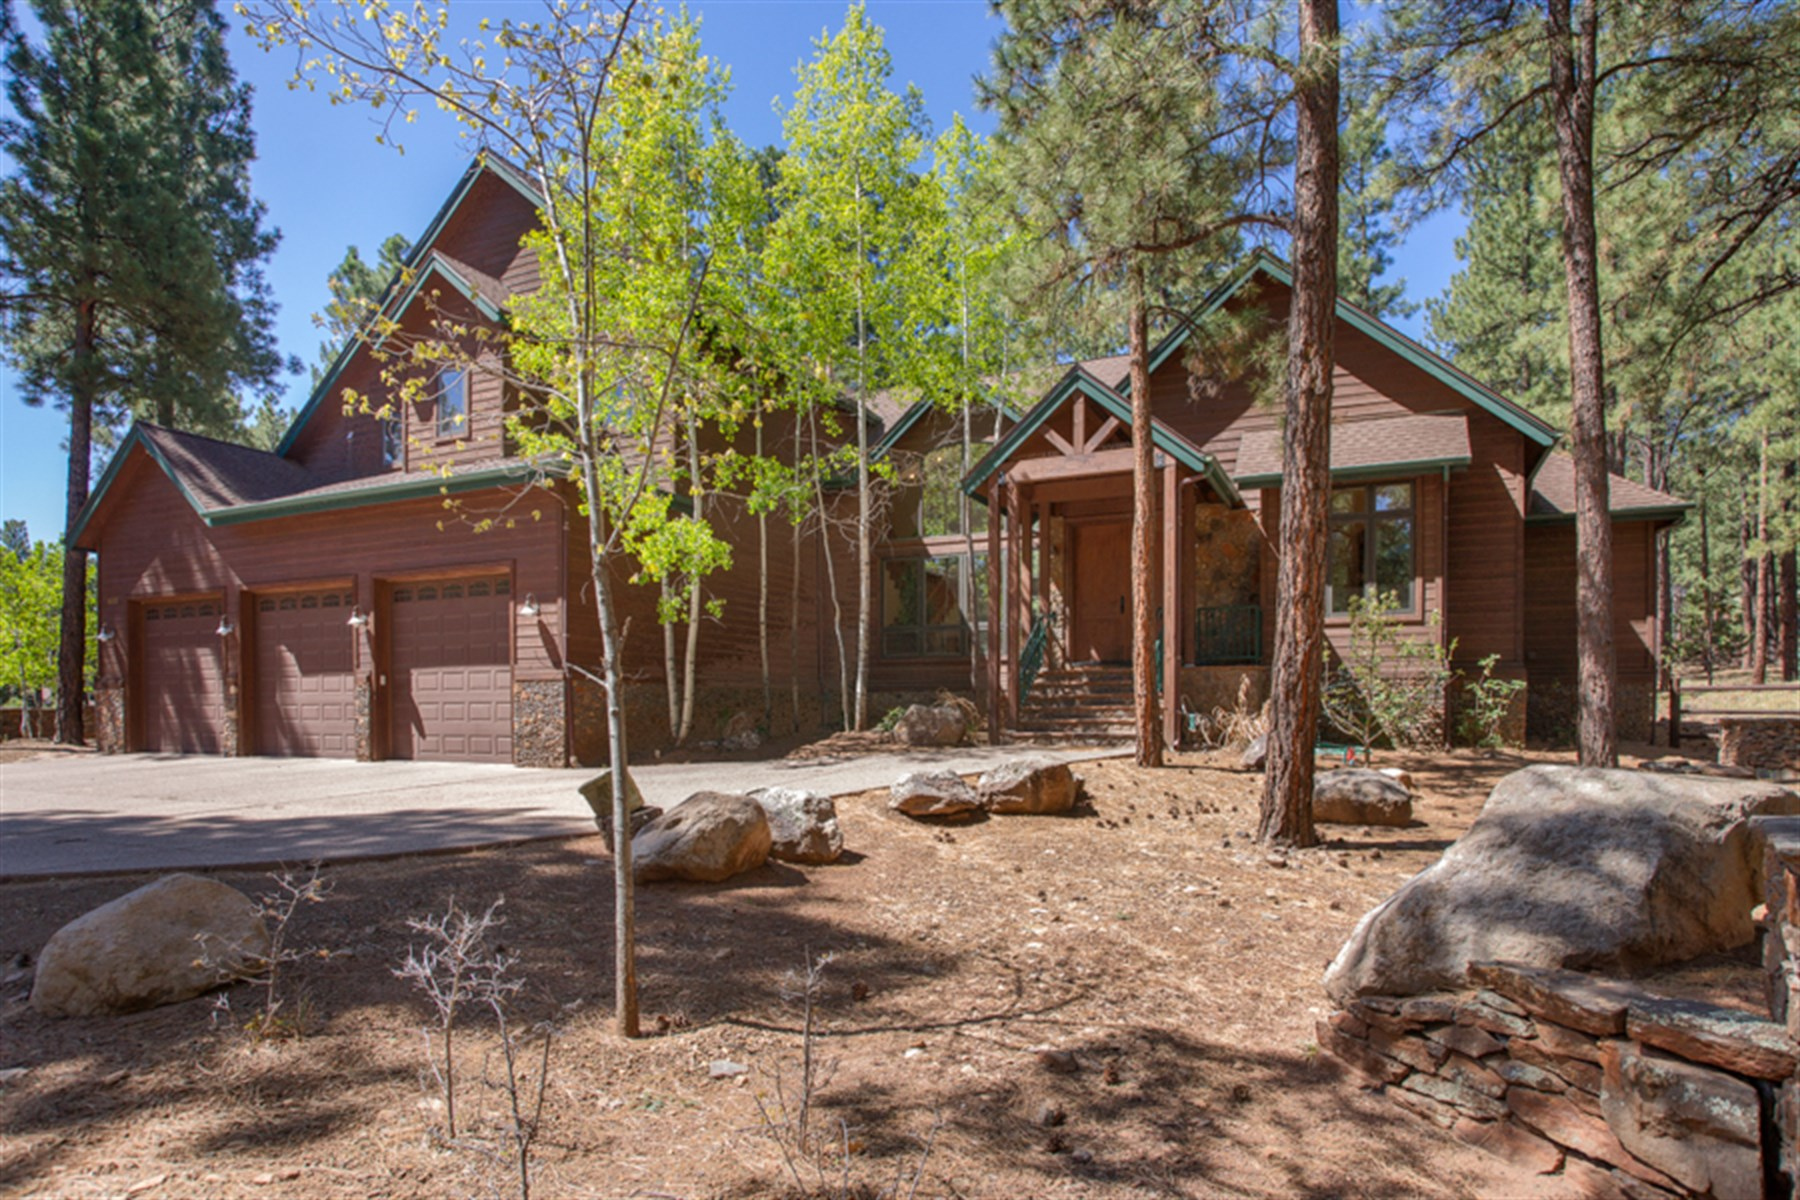 Single Family Home for Sale at Amazing property set in the prestigious neighborhood of Kinlani Estates. 1655 N Kittredge RD Flagstaff, Arizona 86001 United States